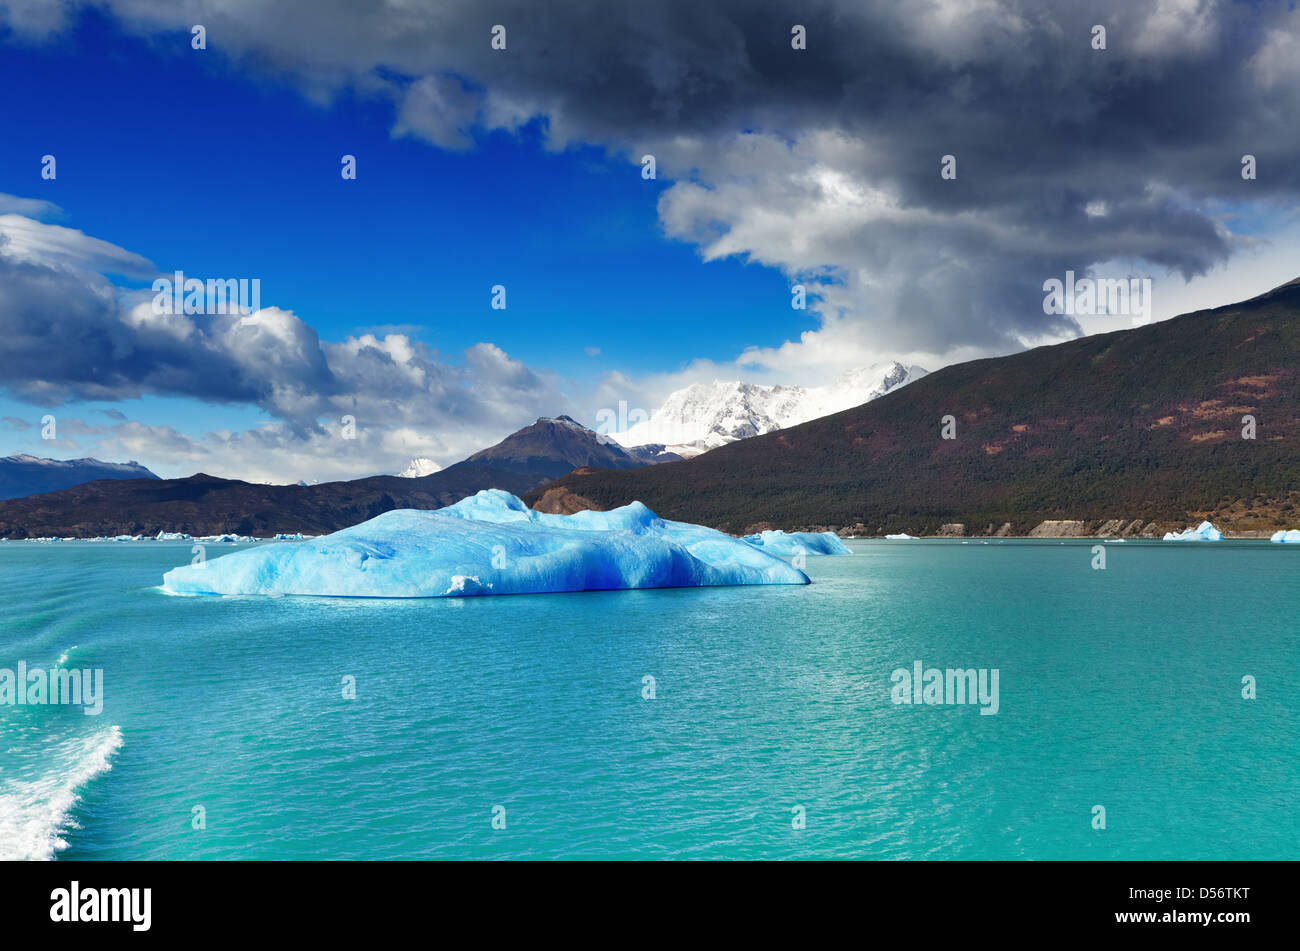 Argentino Lake with ice floes, Patagonia, Argentina - Stock Image